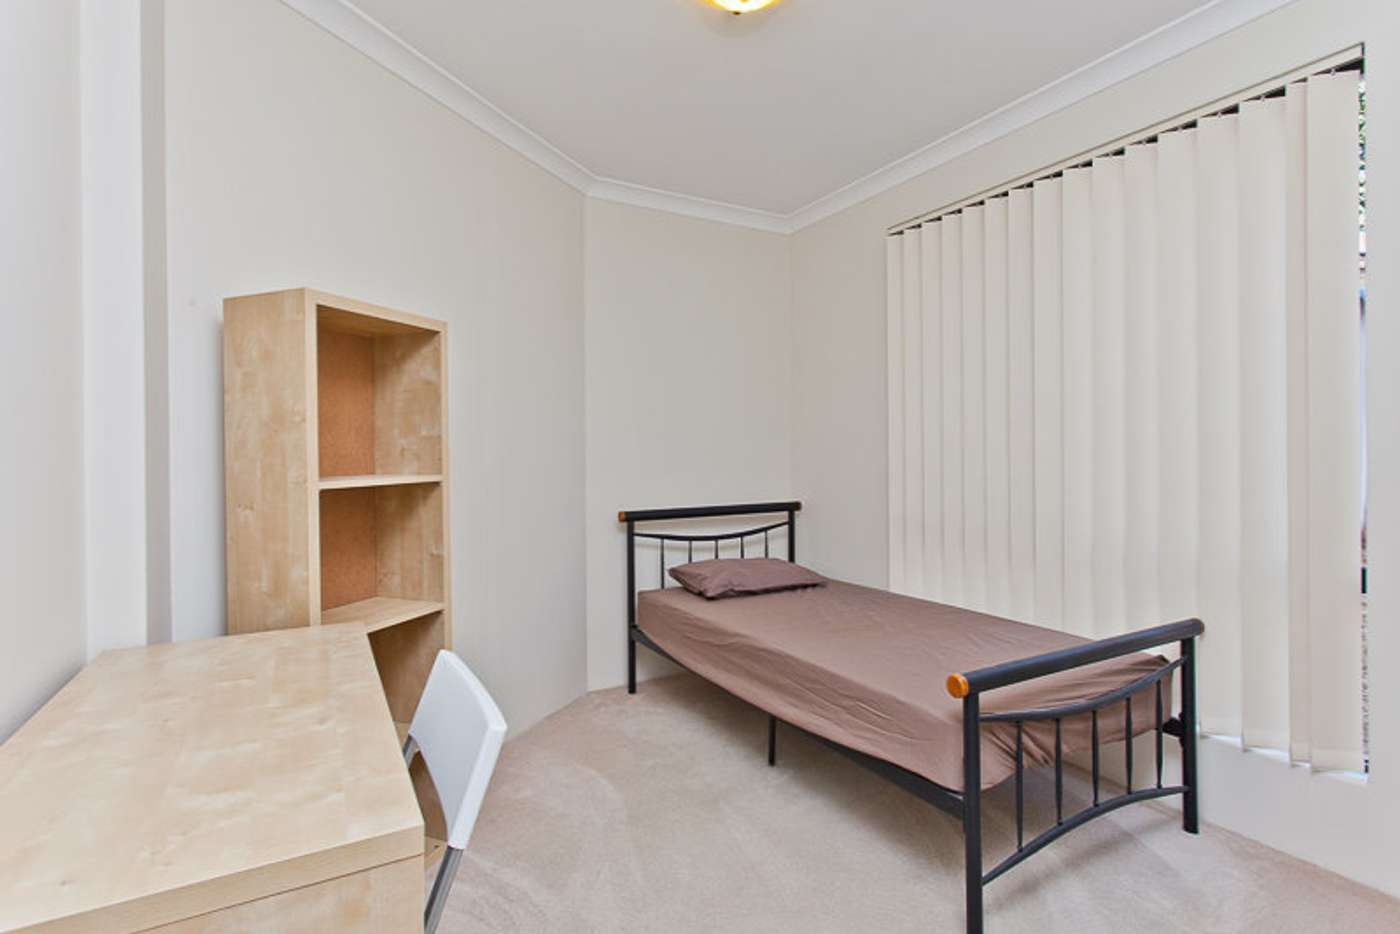 Sixth view of Homely house listing, 25C Sill Street, Bentley WA 6102